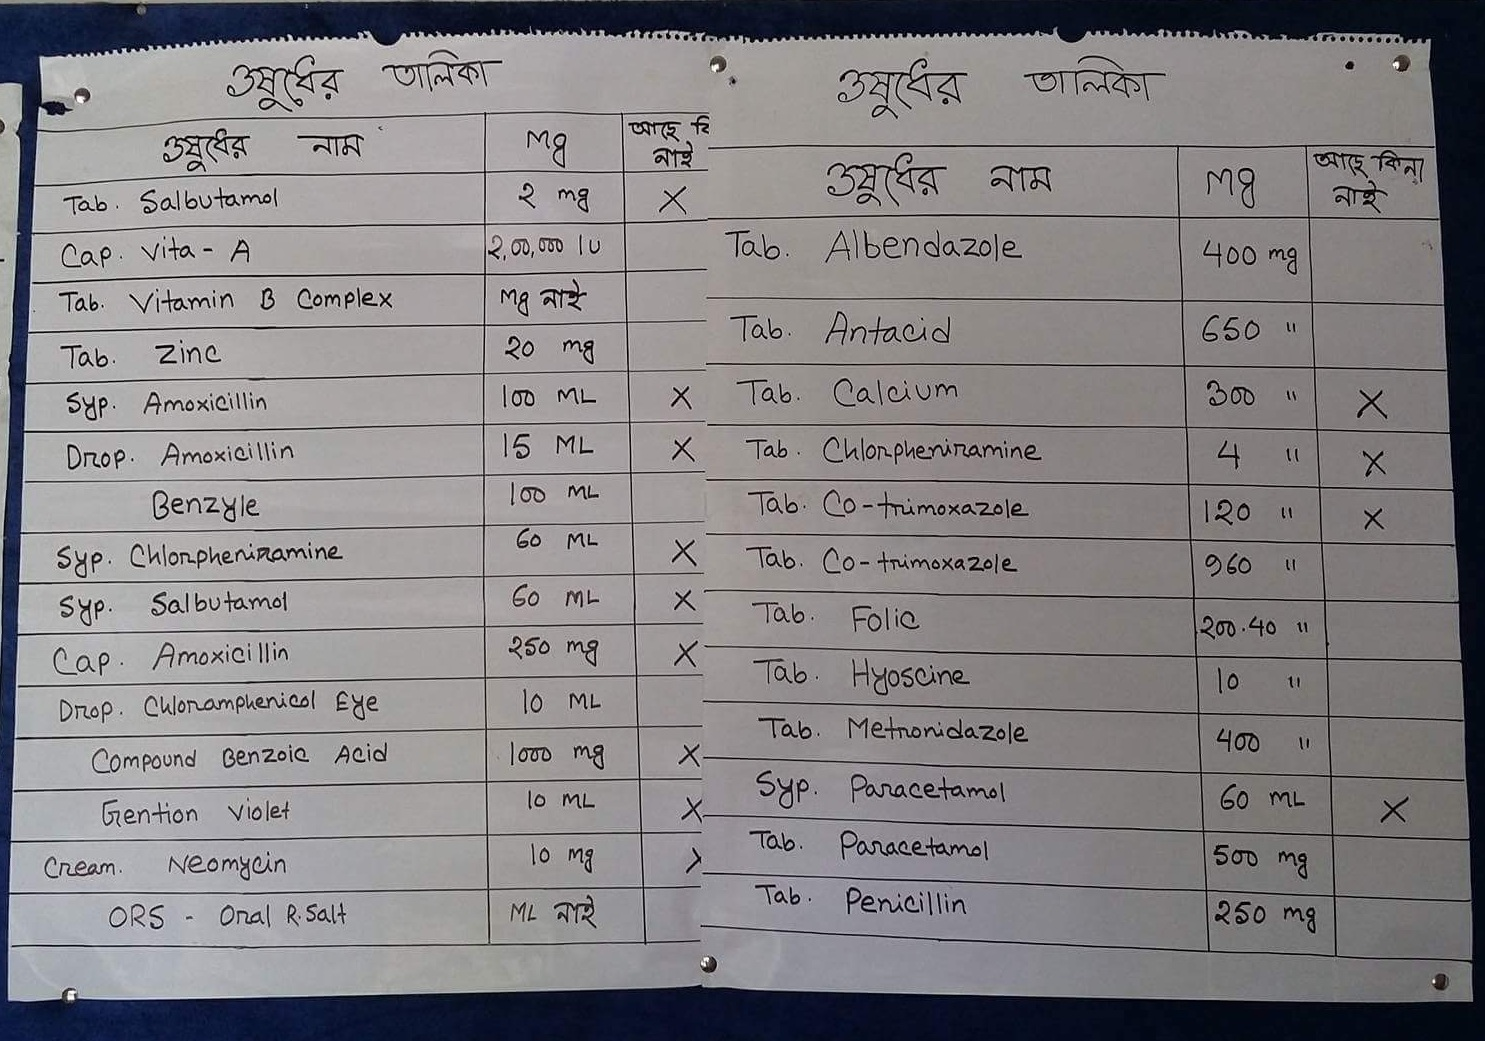 List of available drugs visible to all